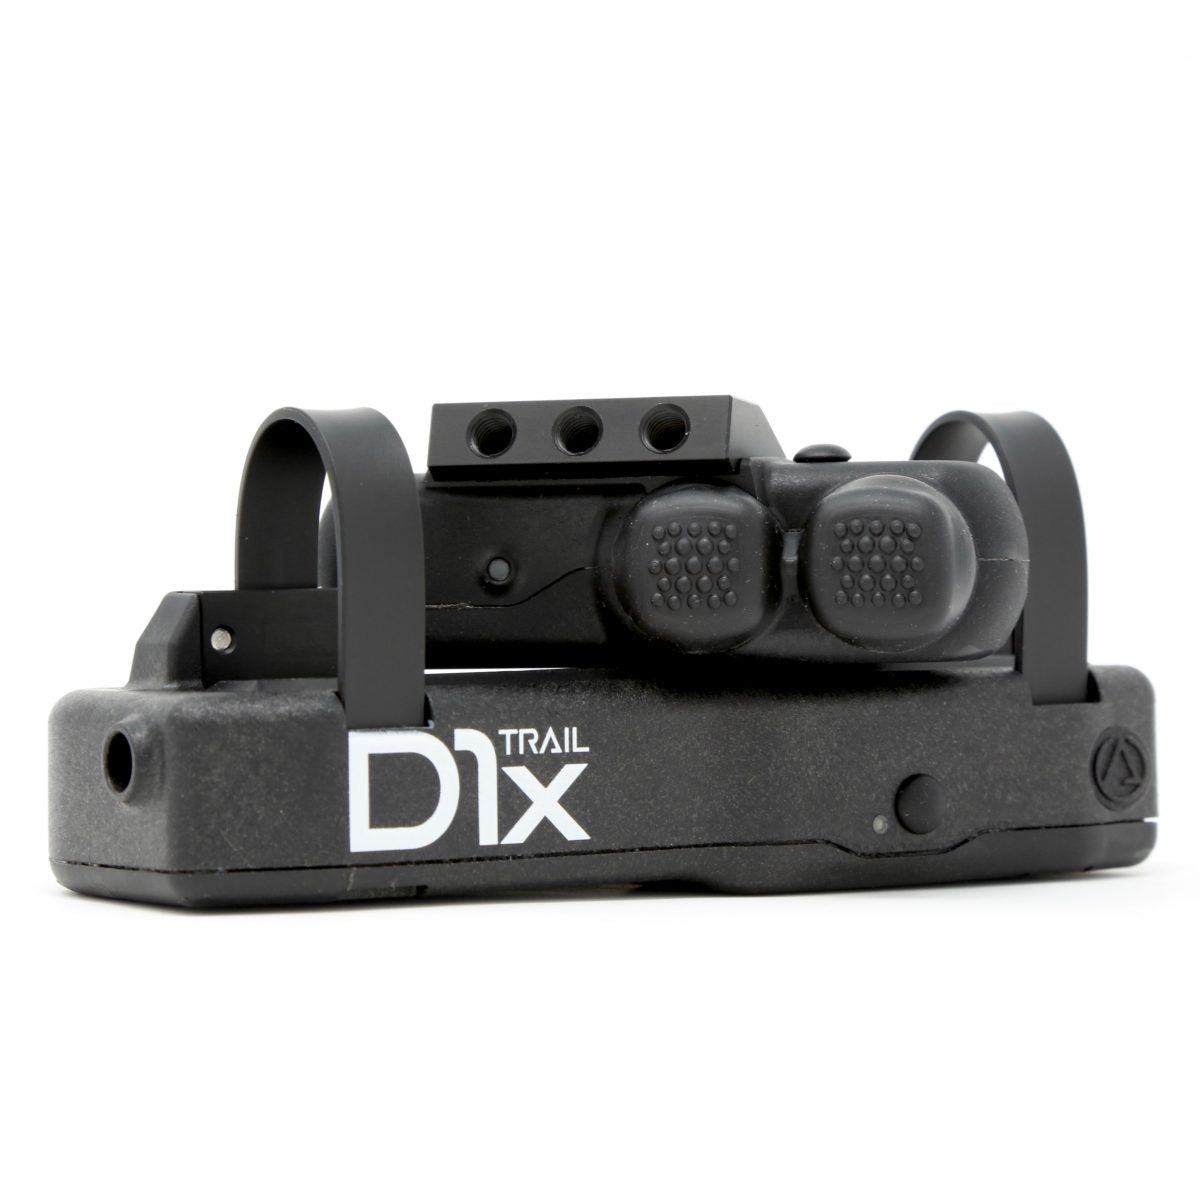 D1x Trail & SRAM GX Eagle kit